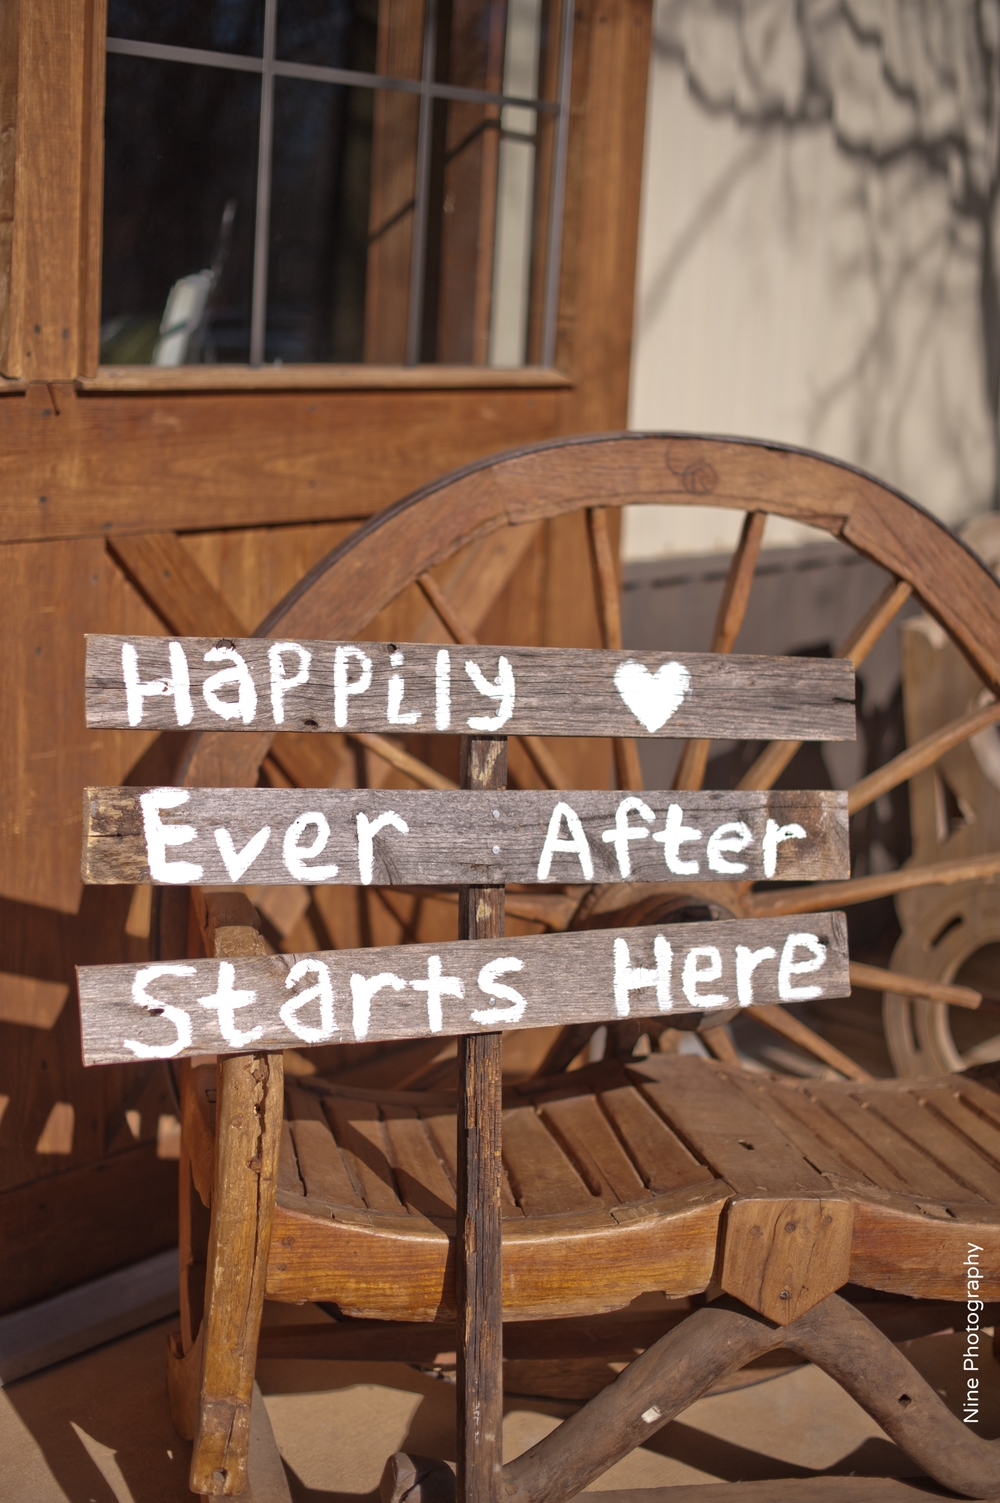 Rustic Happily Ever After Starts Here sign